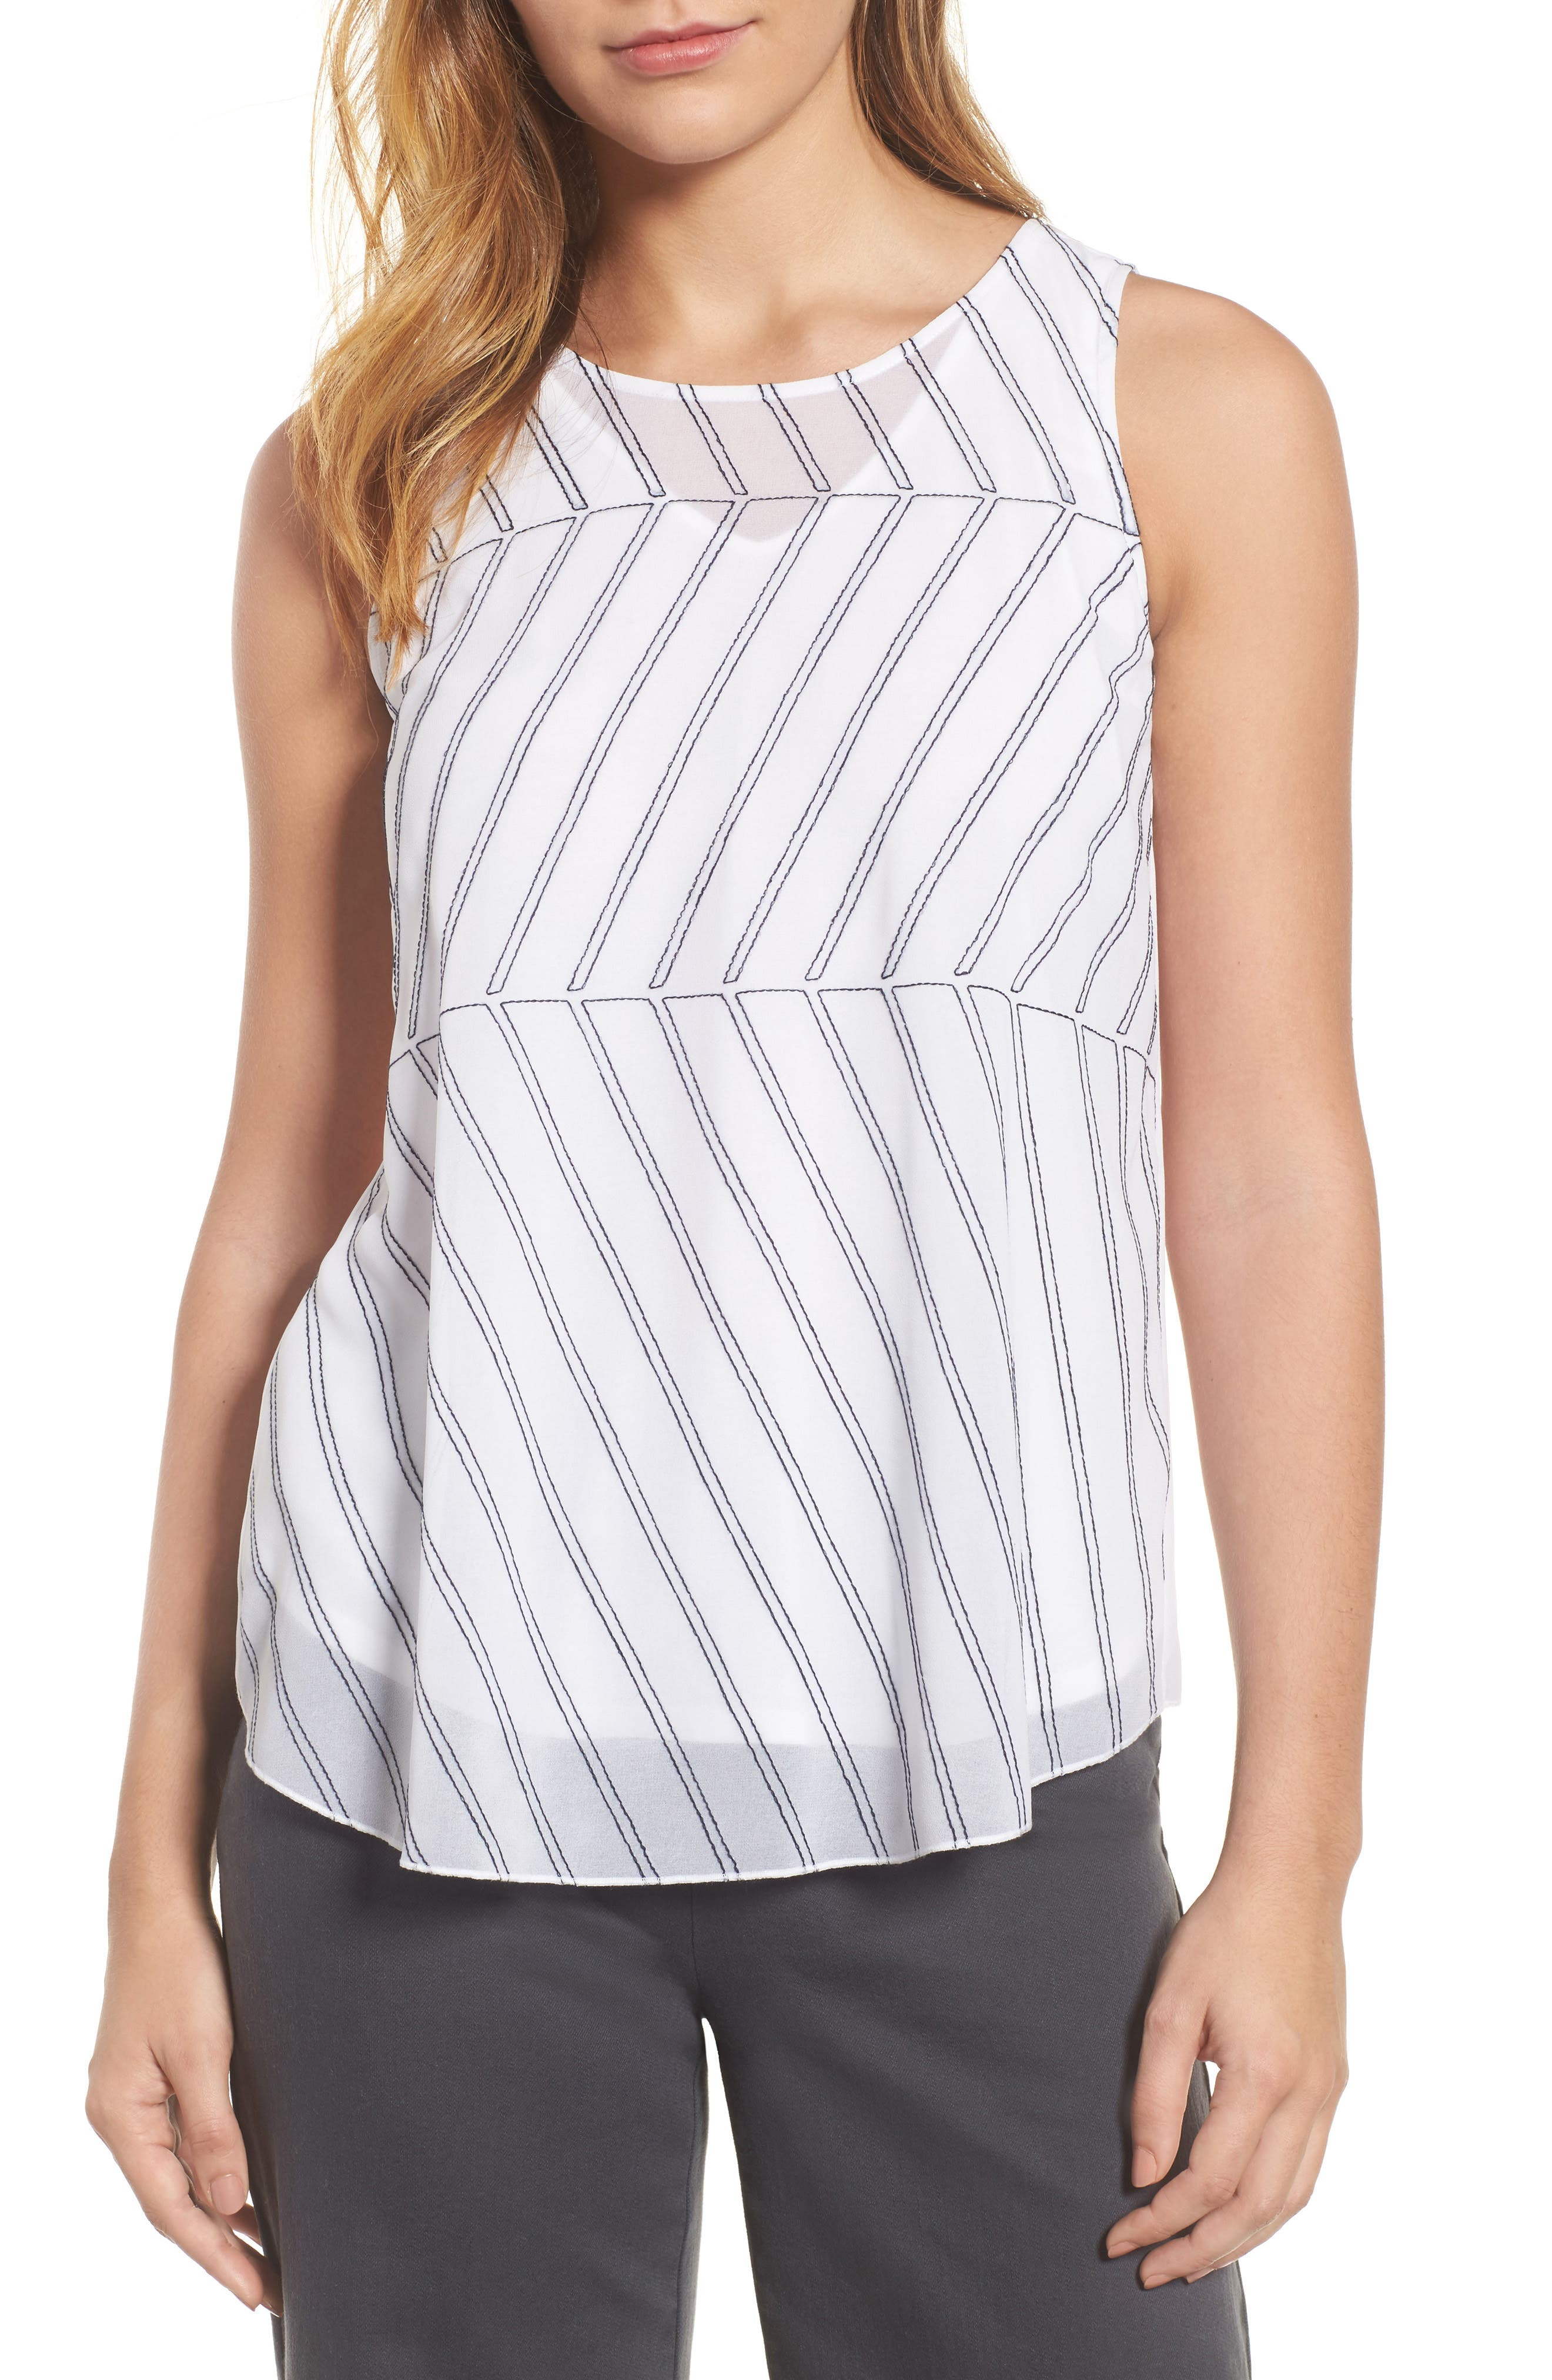 Heat Retreat Layered Tank,                             Main thumbnail 1, color,                             Paper White